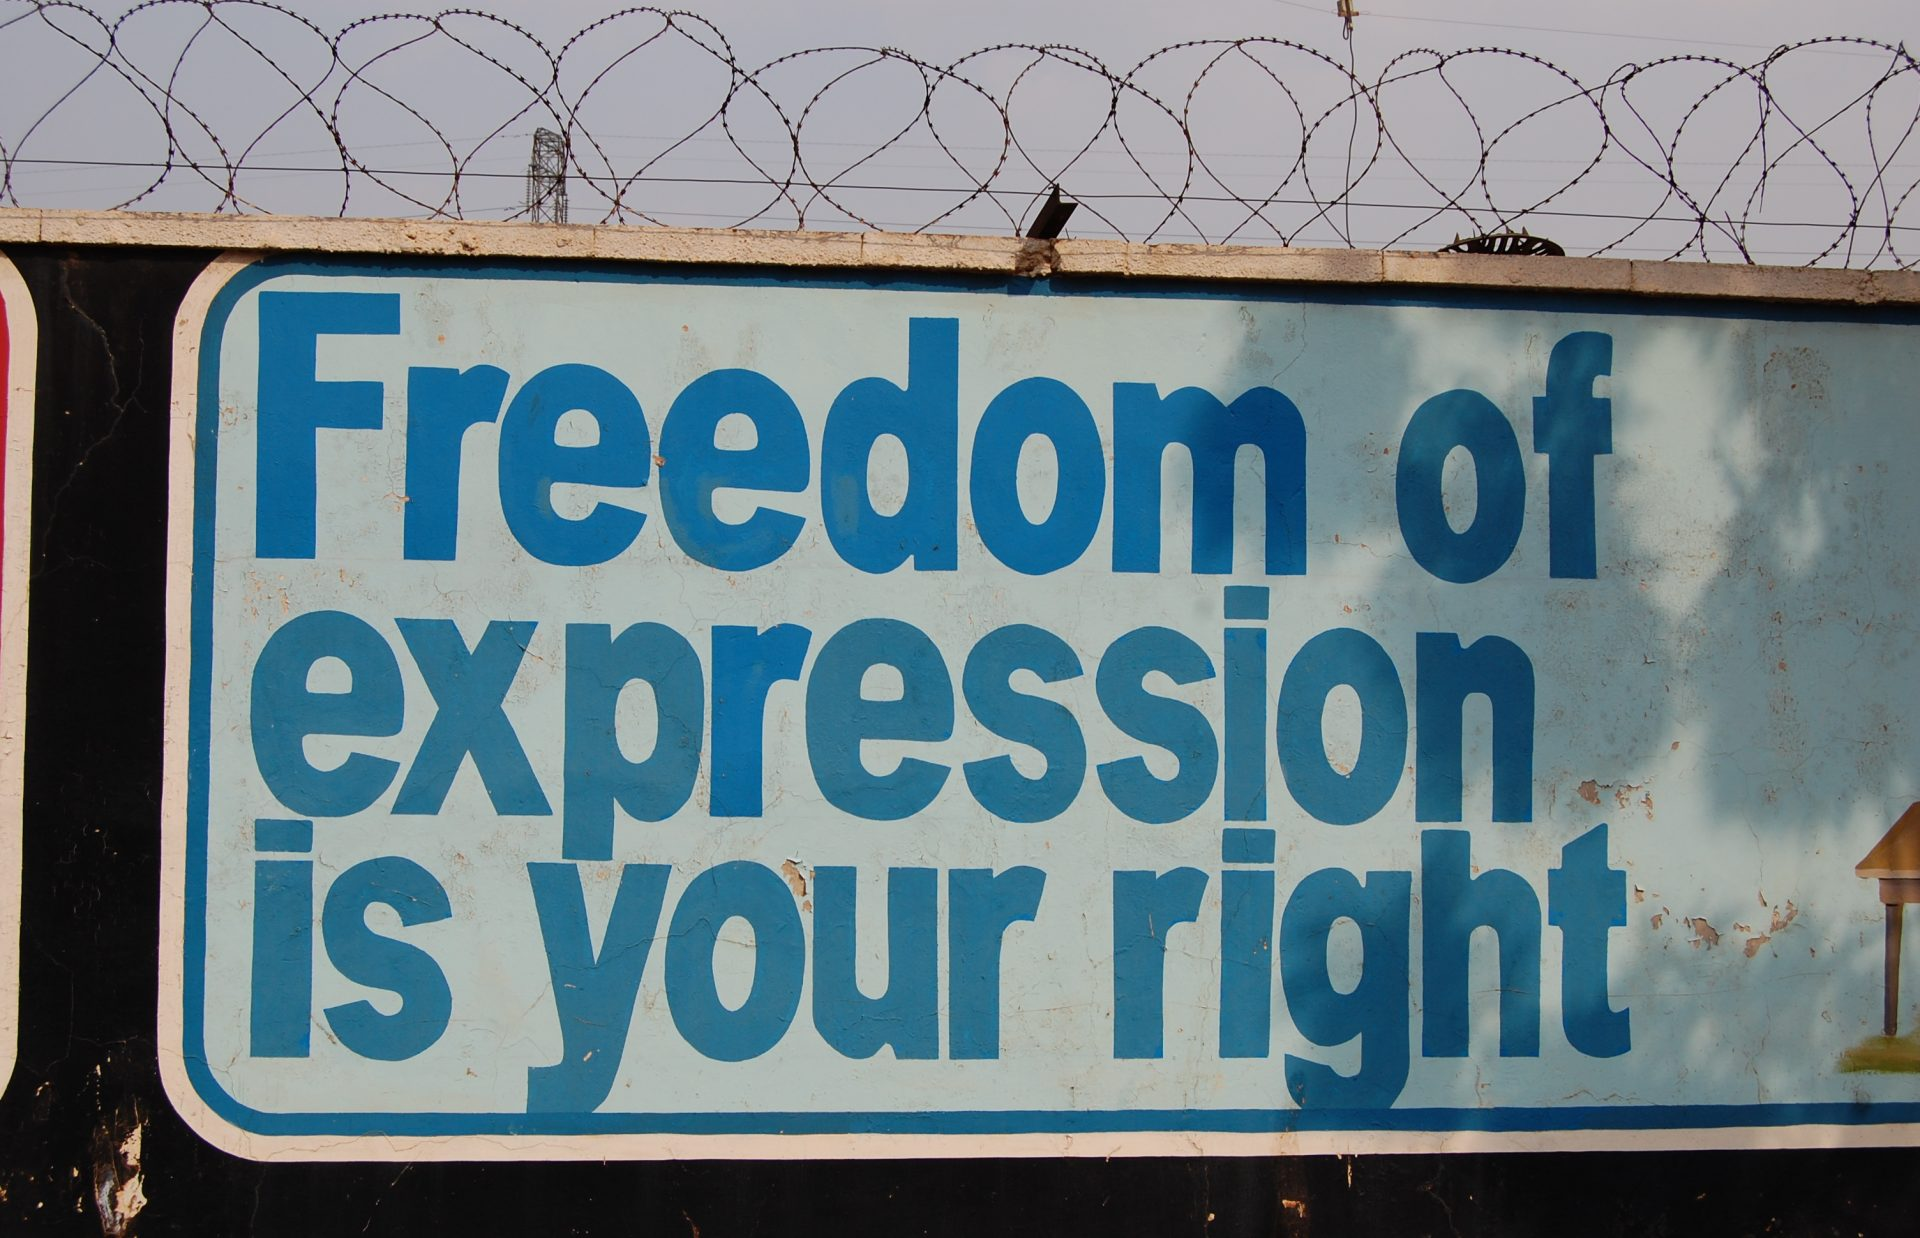 Comedy festival at the University puts freedom of expression centre ...